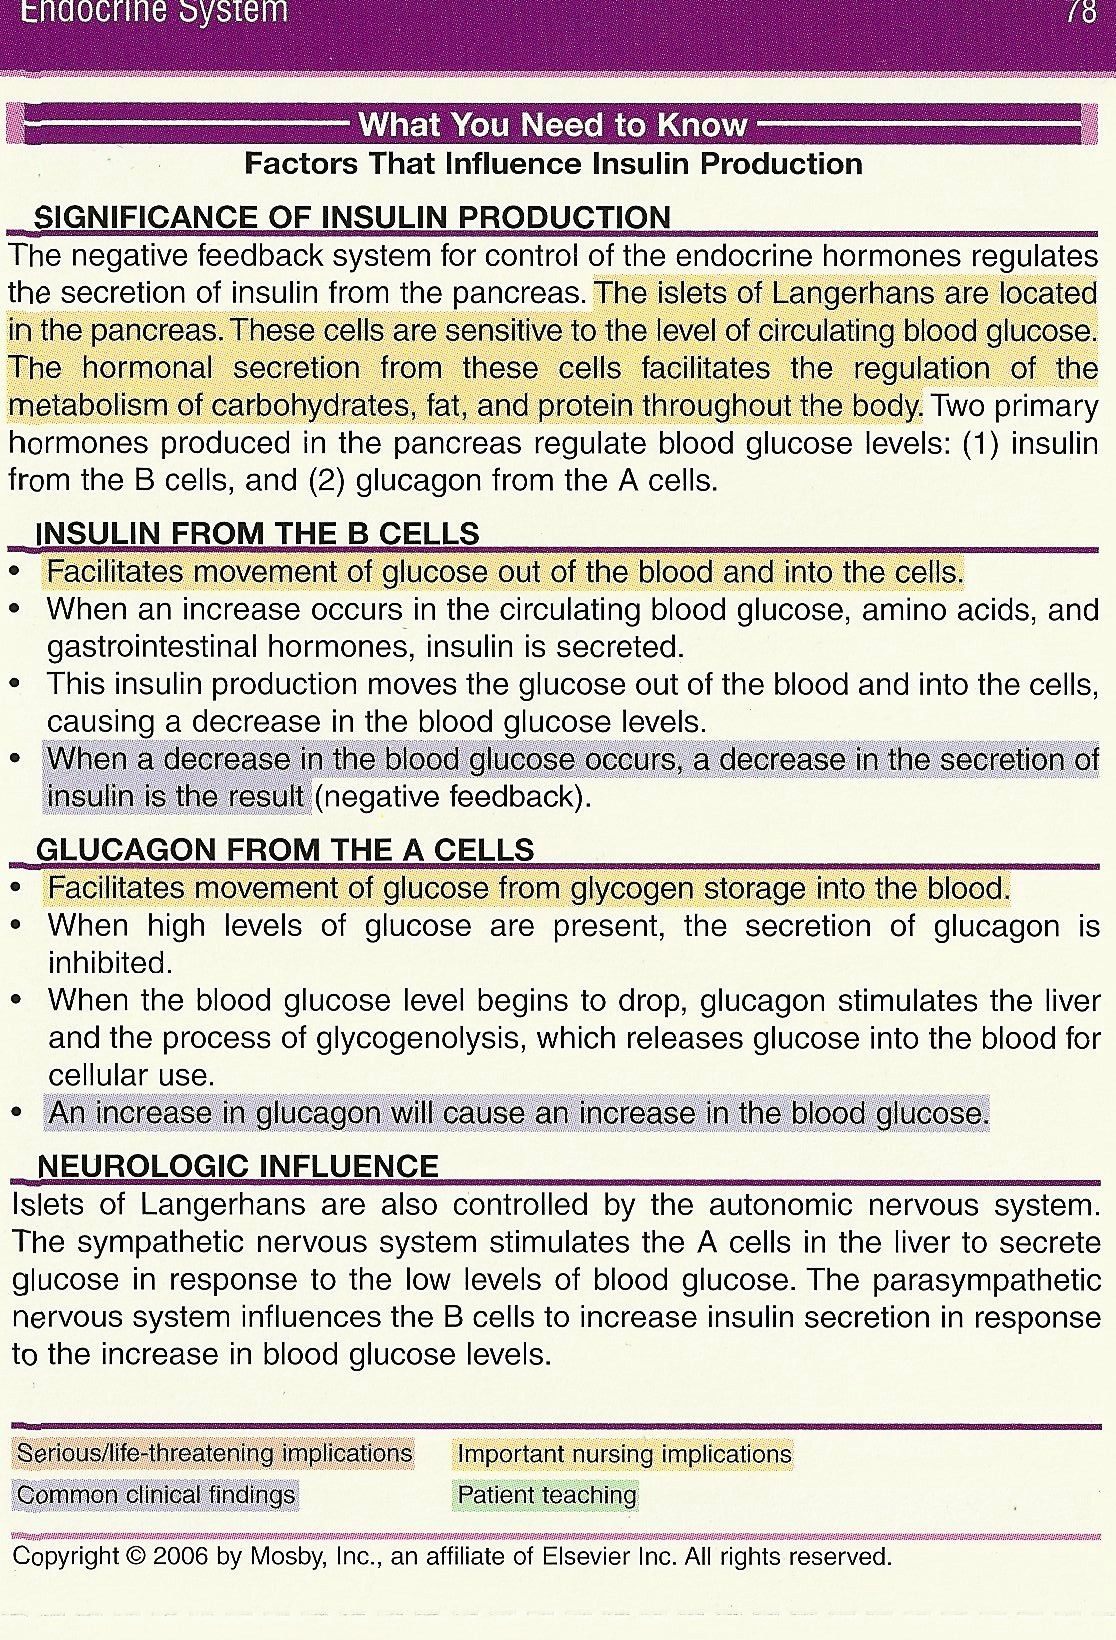 What You Need To Know Insulin Production